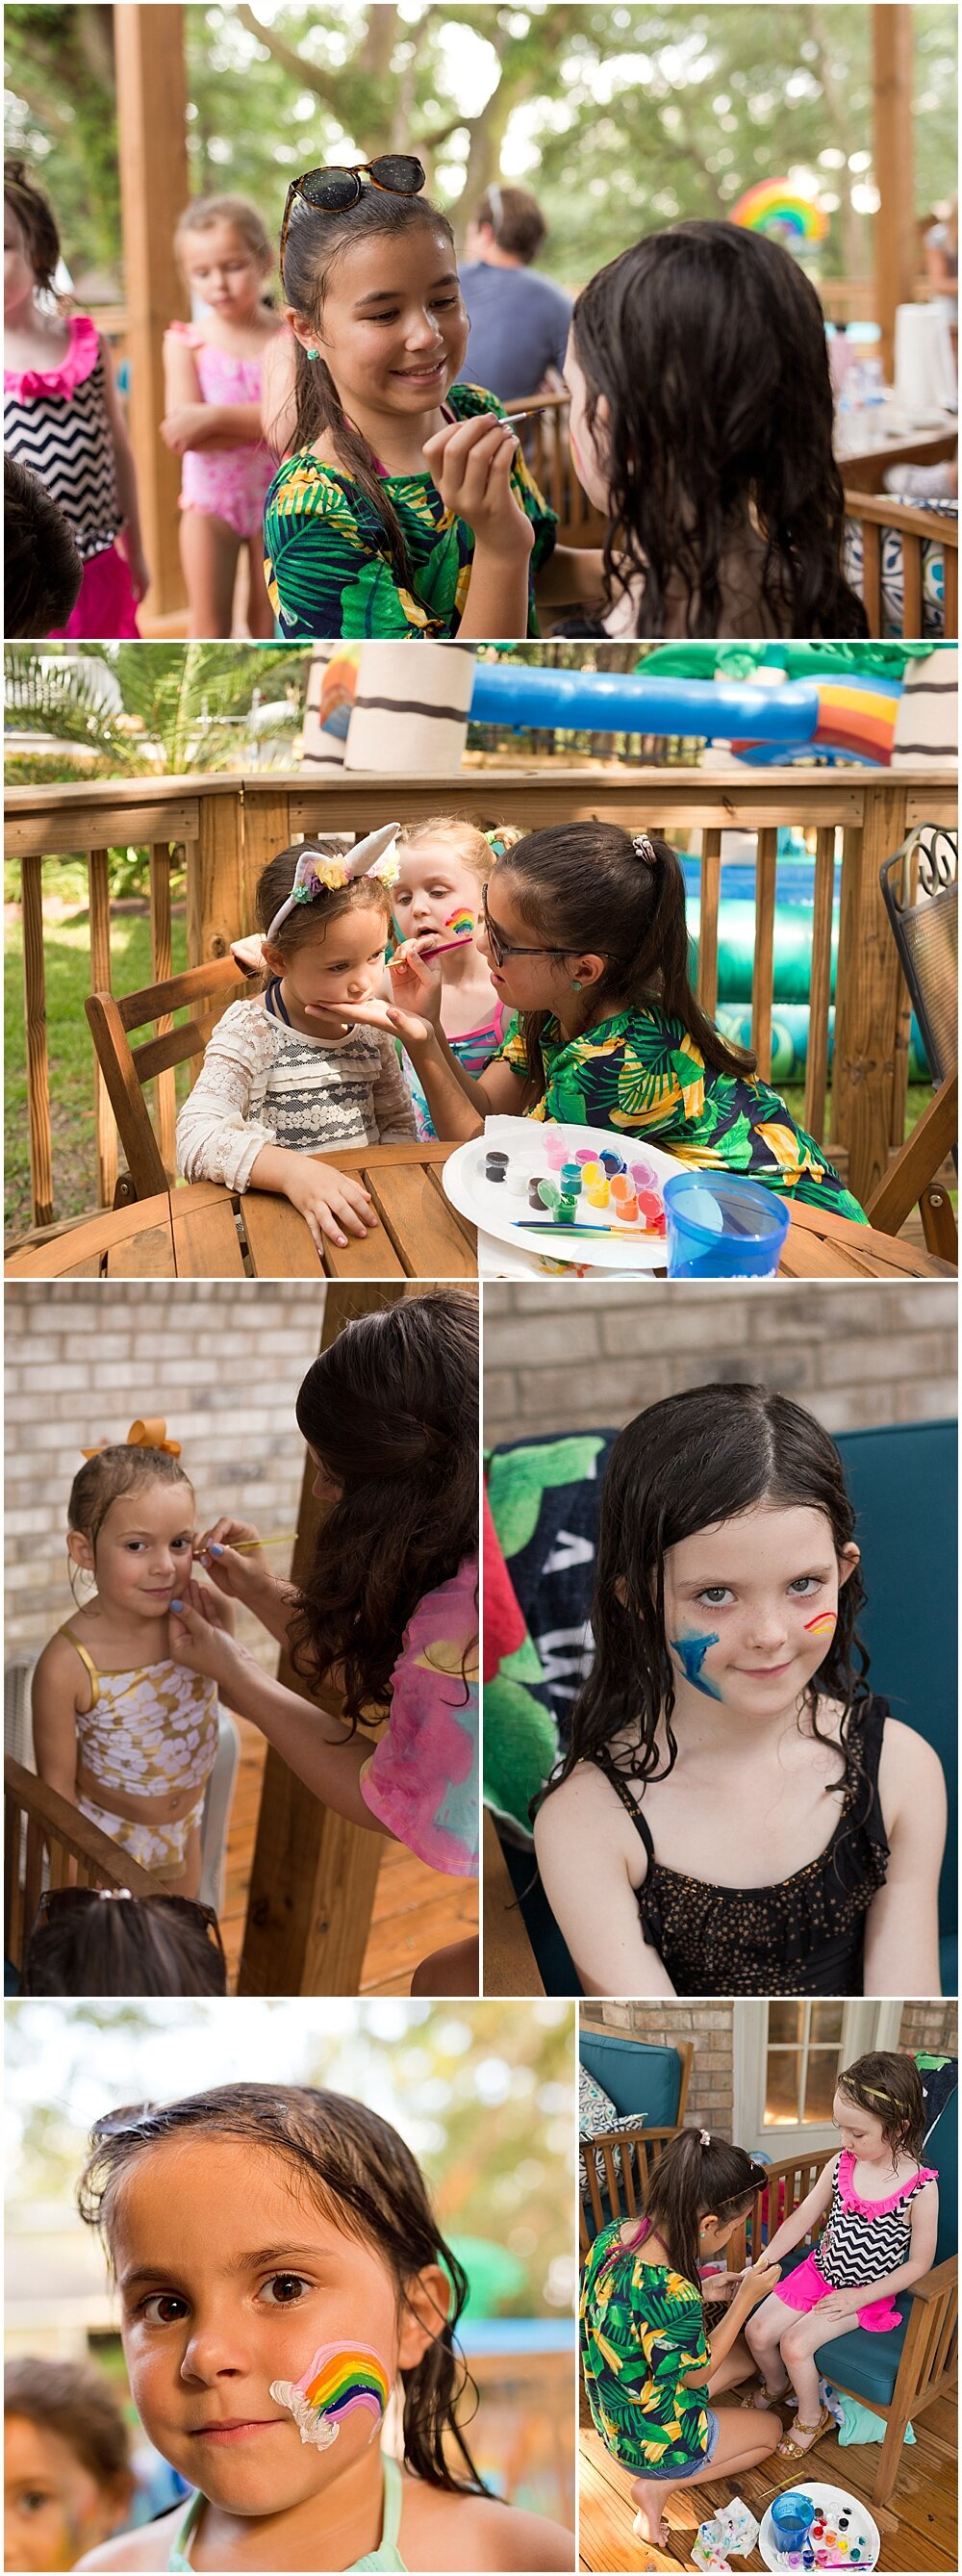 face painting at outdoor kids birthday party